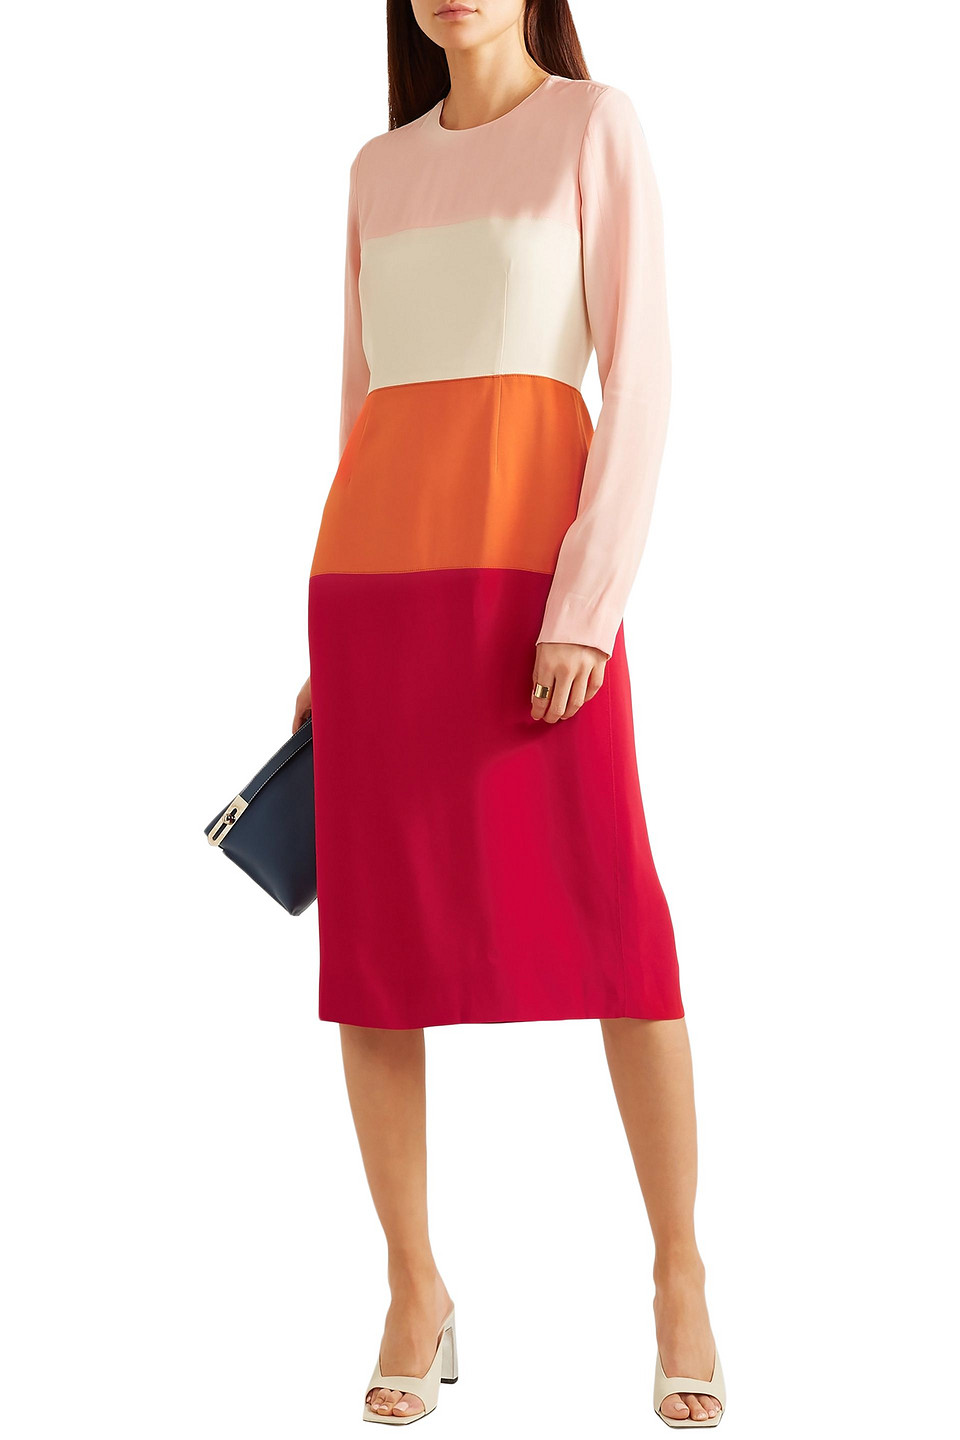 Marni | Marni Woman Color-block Crepe Dress Multicolor | Clouty